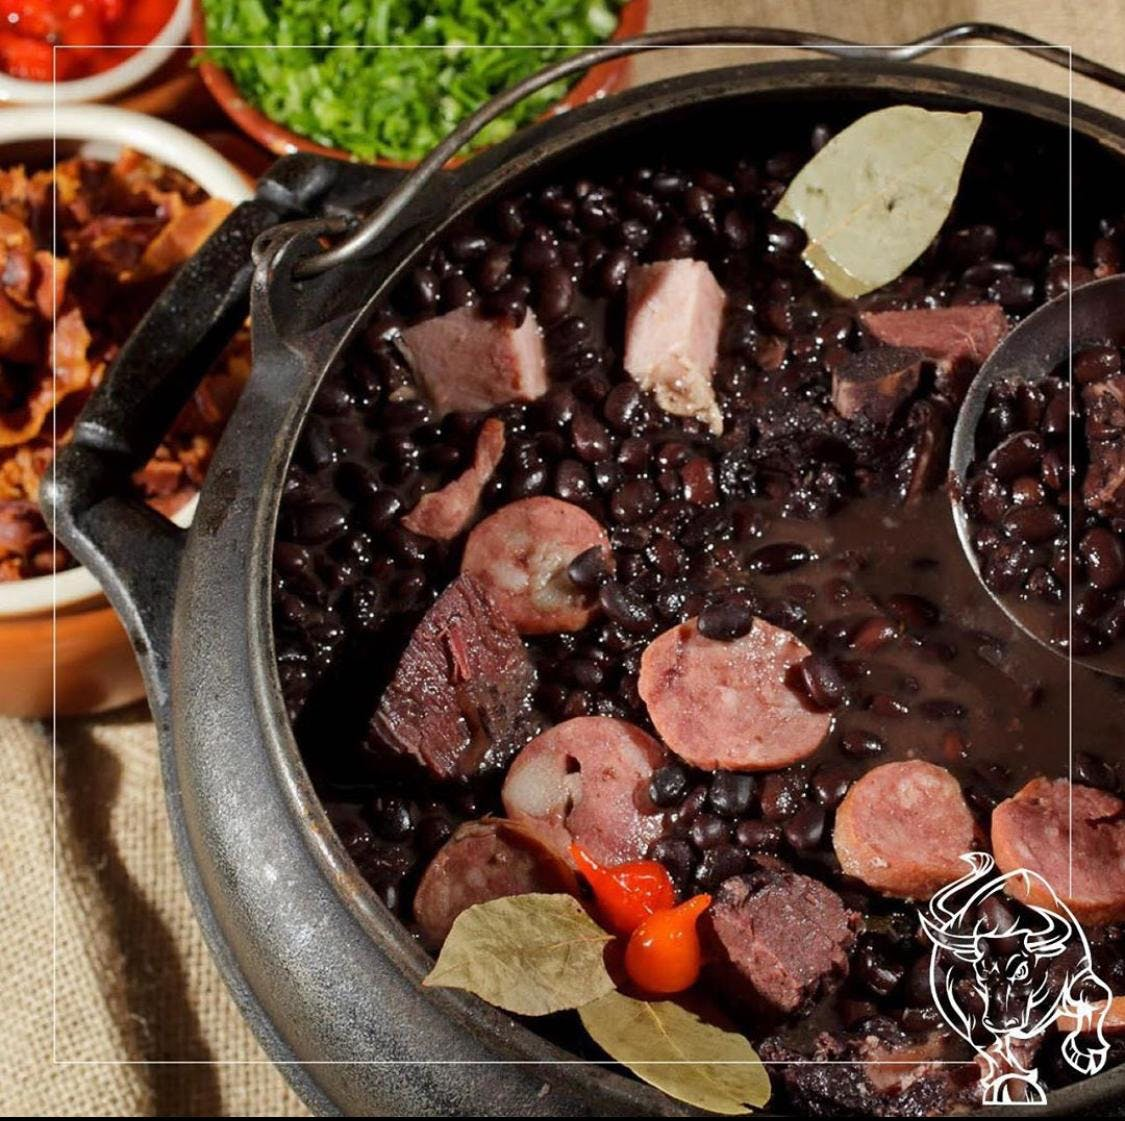 Now serving AYCE Feijoada every Saturday for only $15.95 plus tax per person!